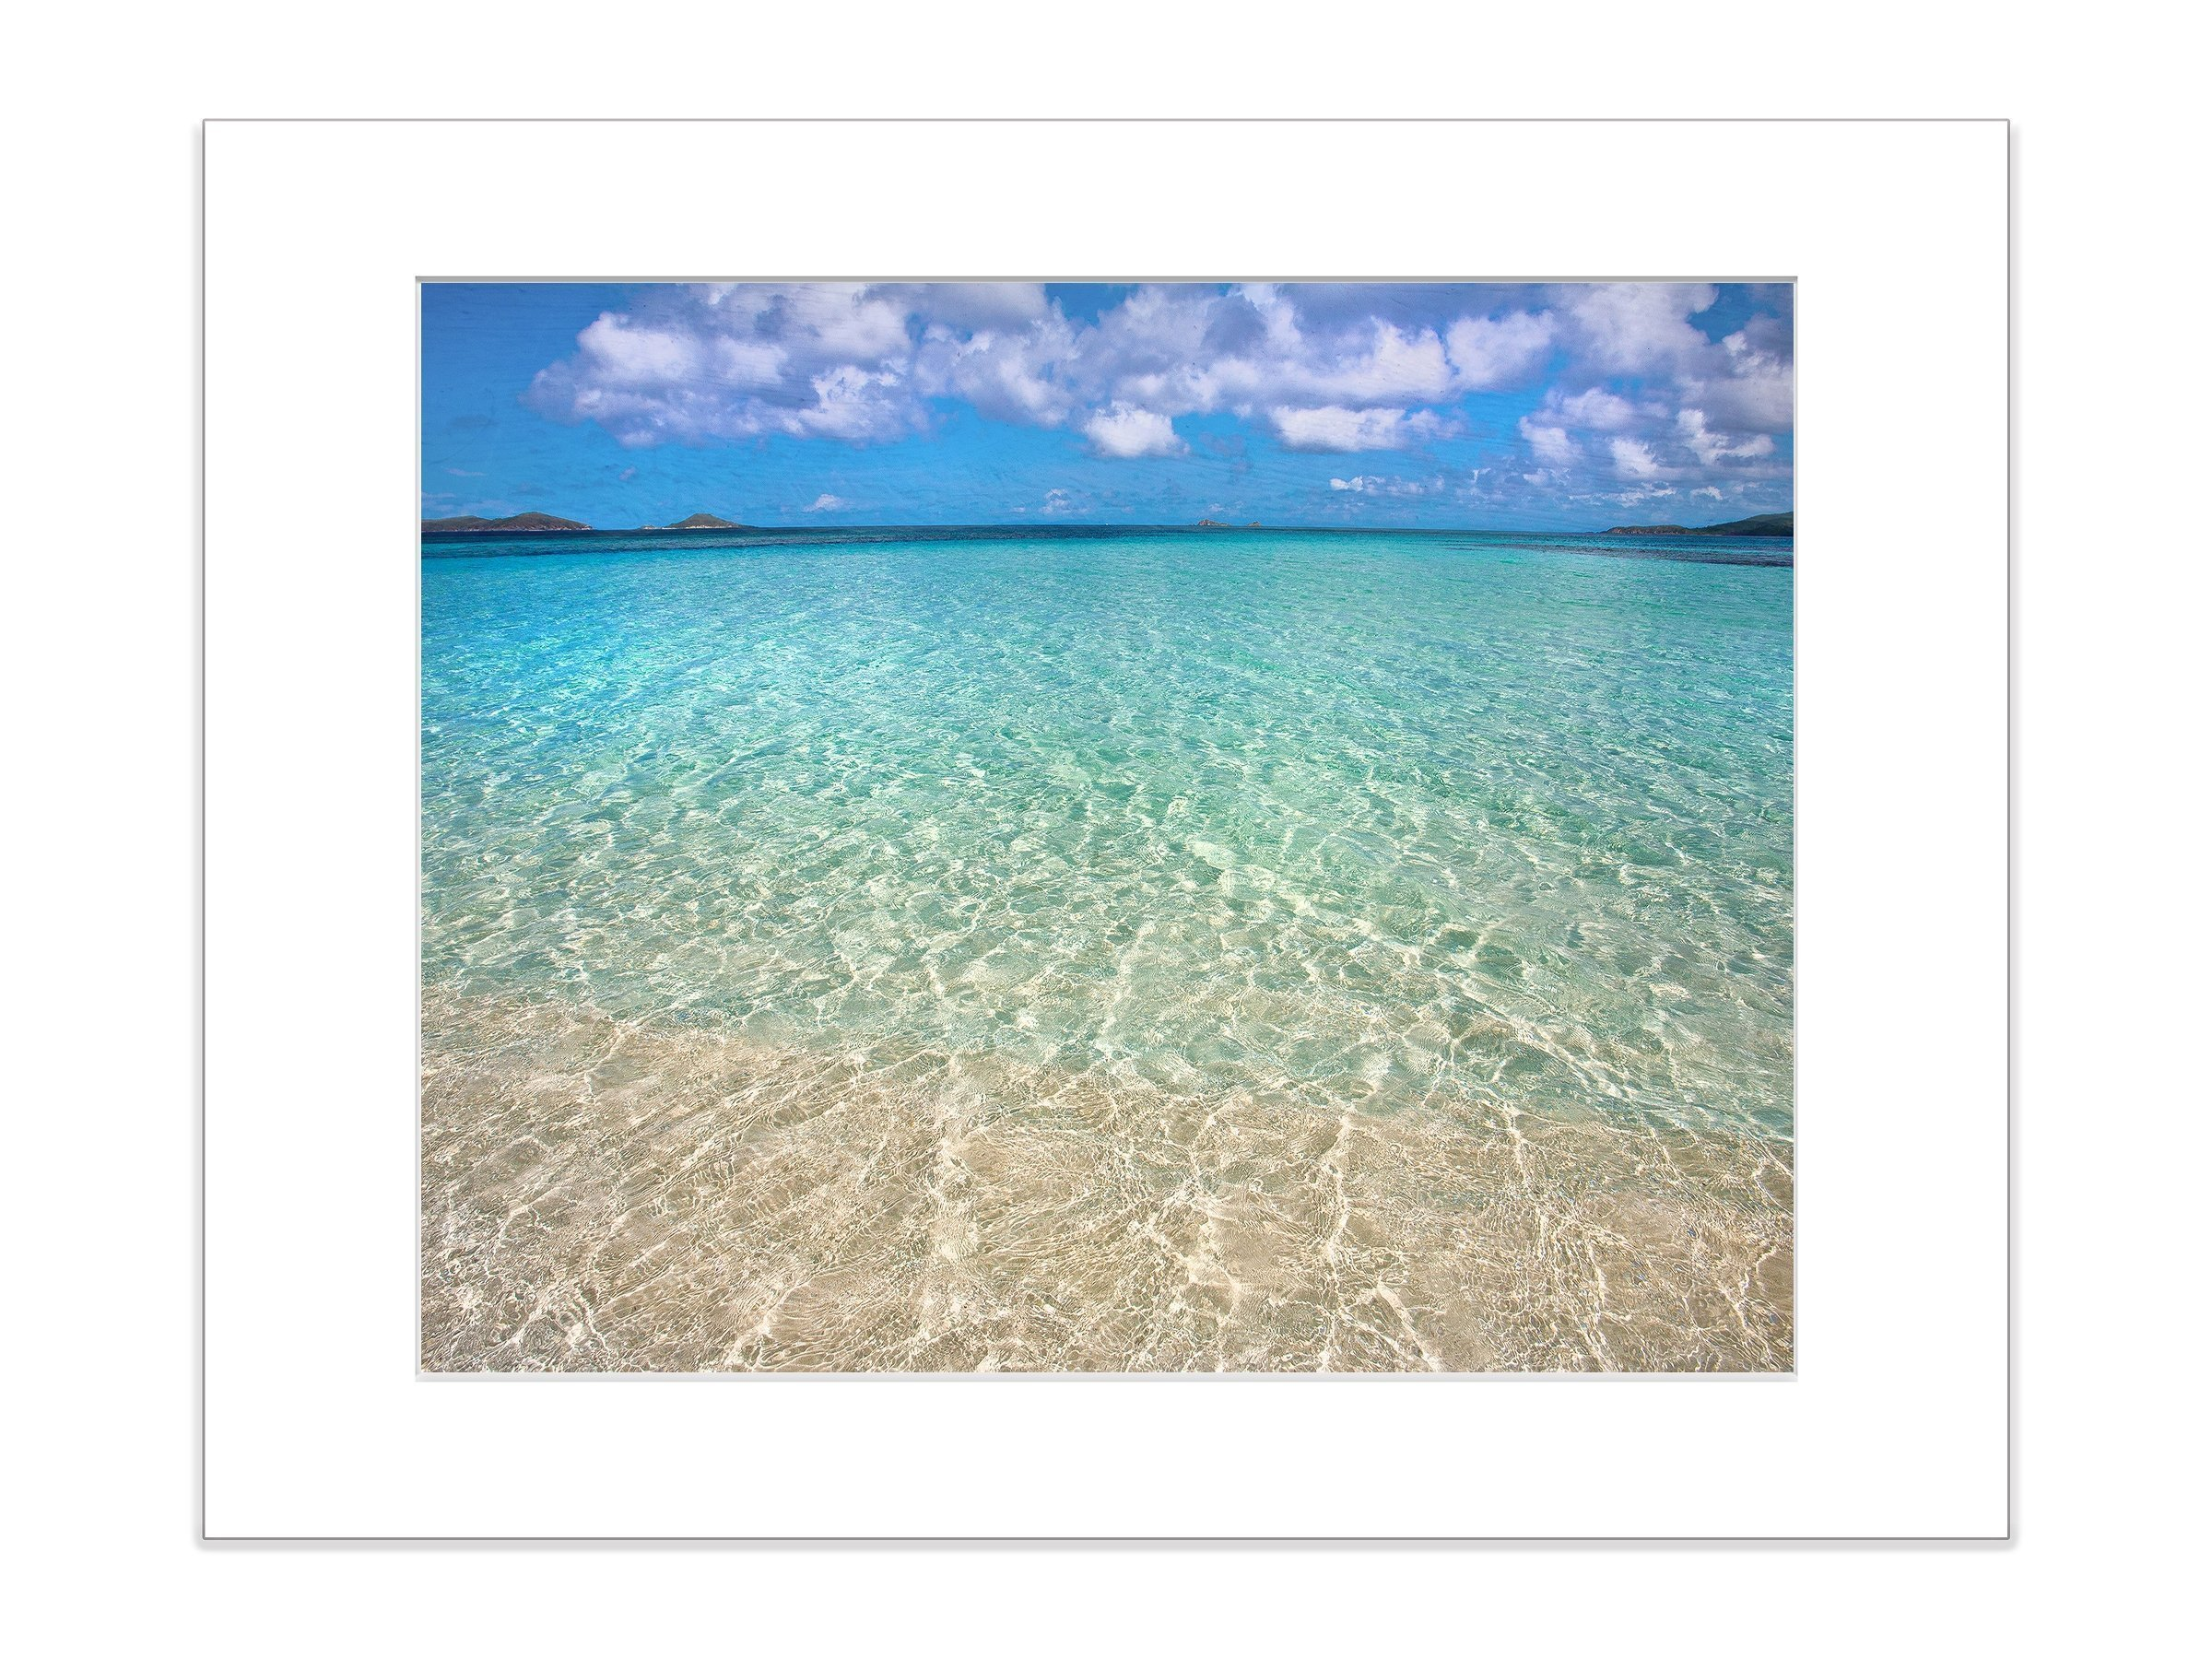 Island Beach Photography 5x7 Inch Matted Art Print Coastal Water by Catch A Star Fine Art Photography